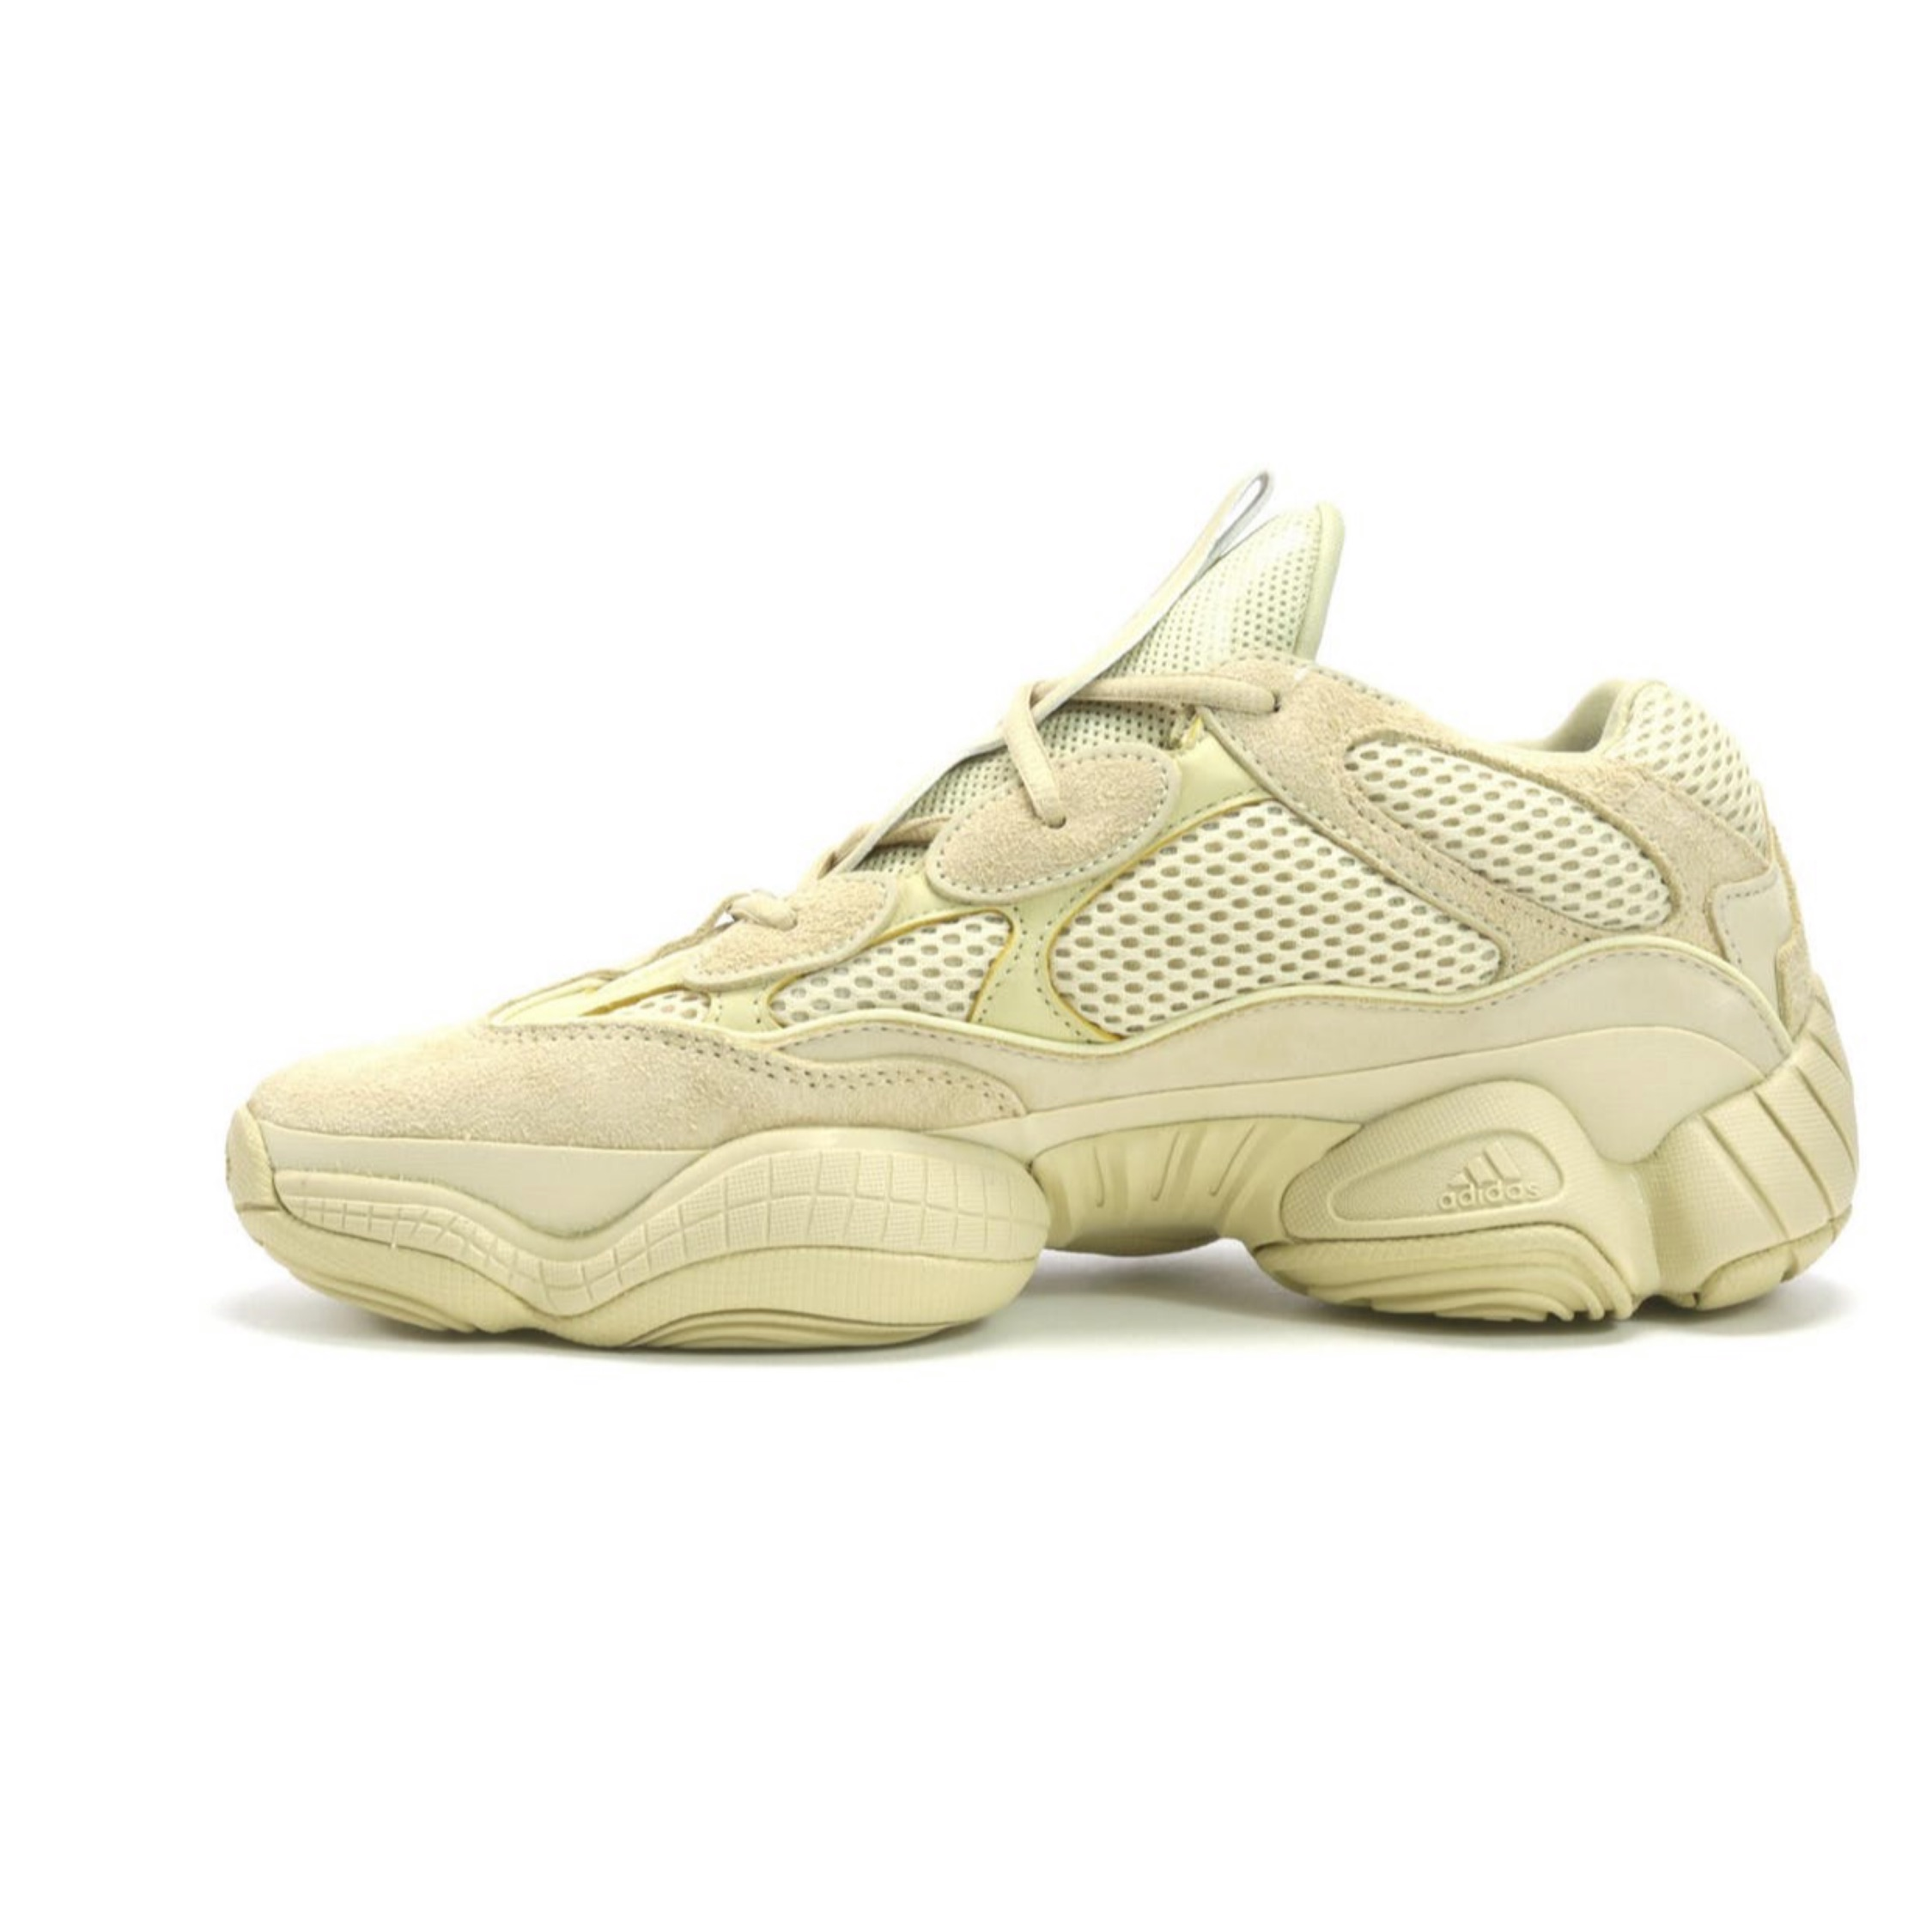 purchase cheap f5331 a281d Adidas Yeezy 500 Super Moon Yellow